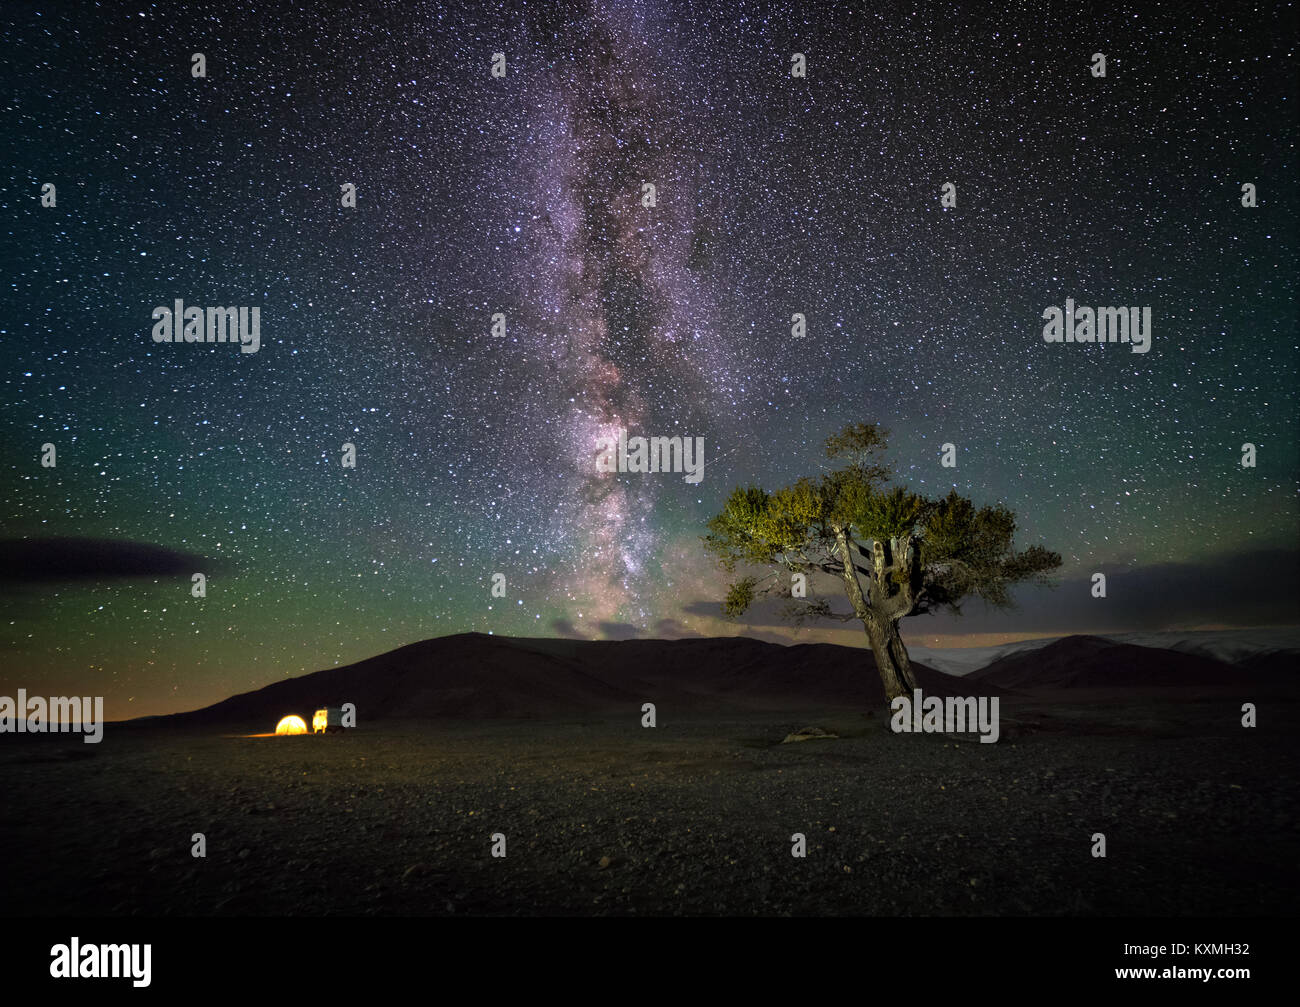 Mongolian milky way night sky astrophotography nightscape stars tree camping tent camper van Russian UAZ 452 Mongolia - Stock Image